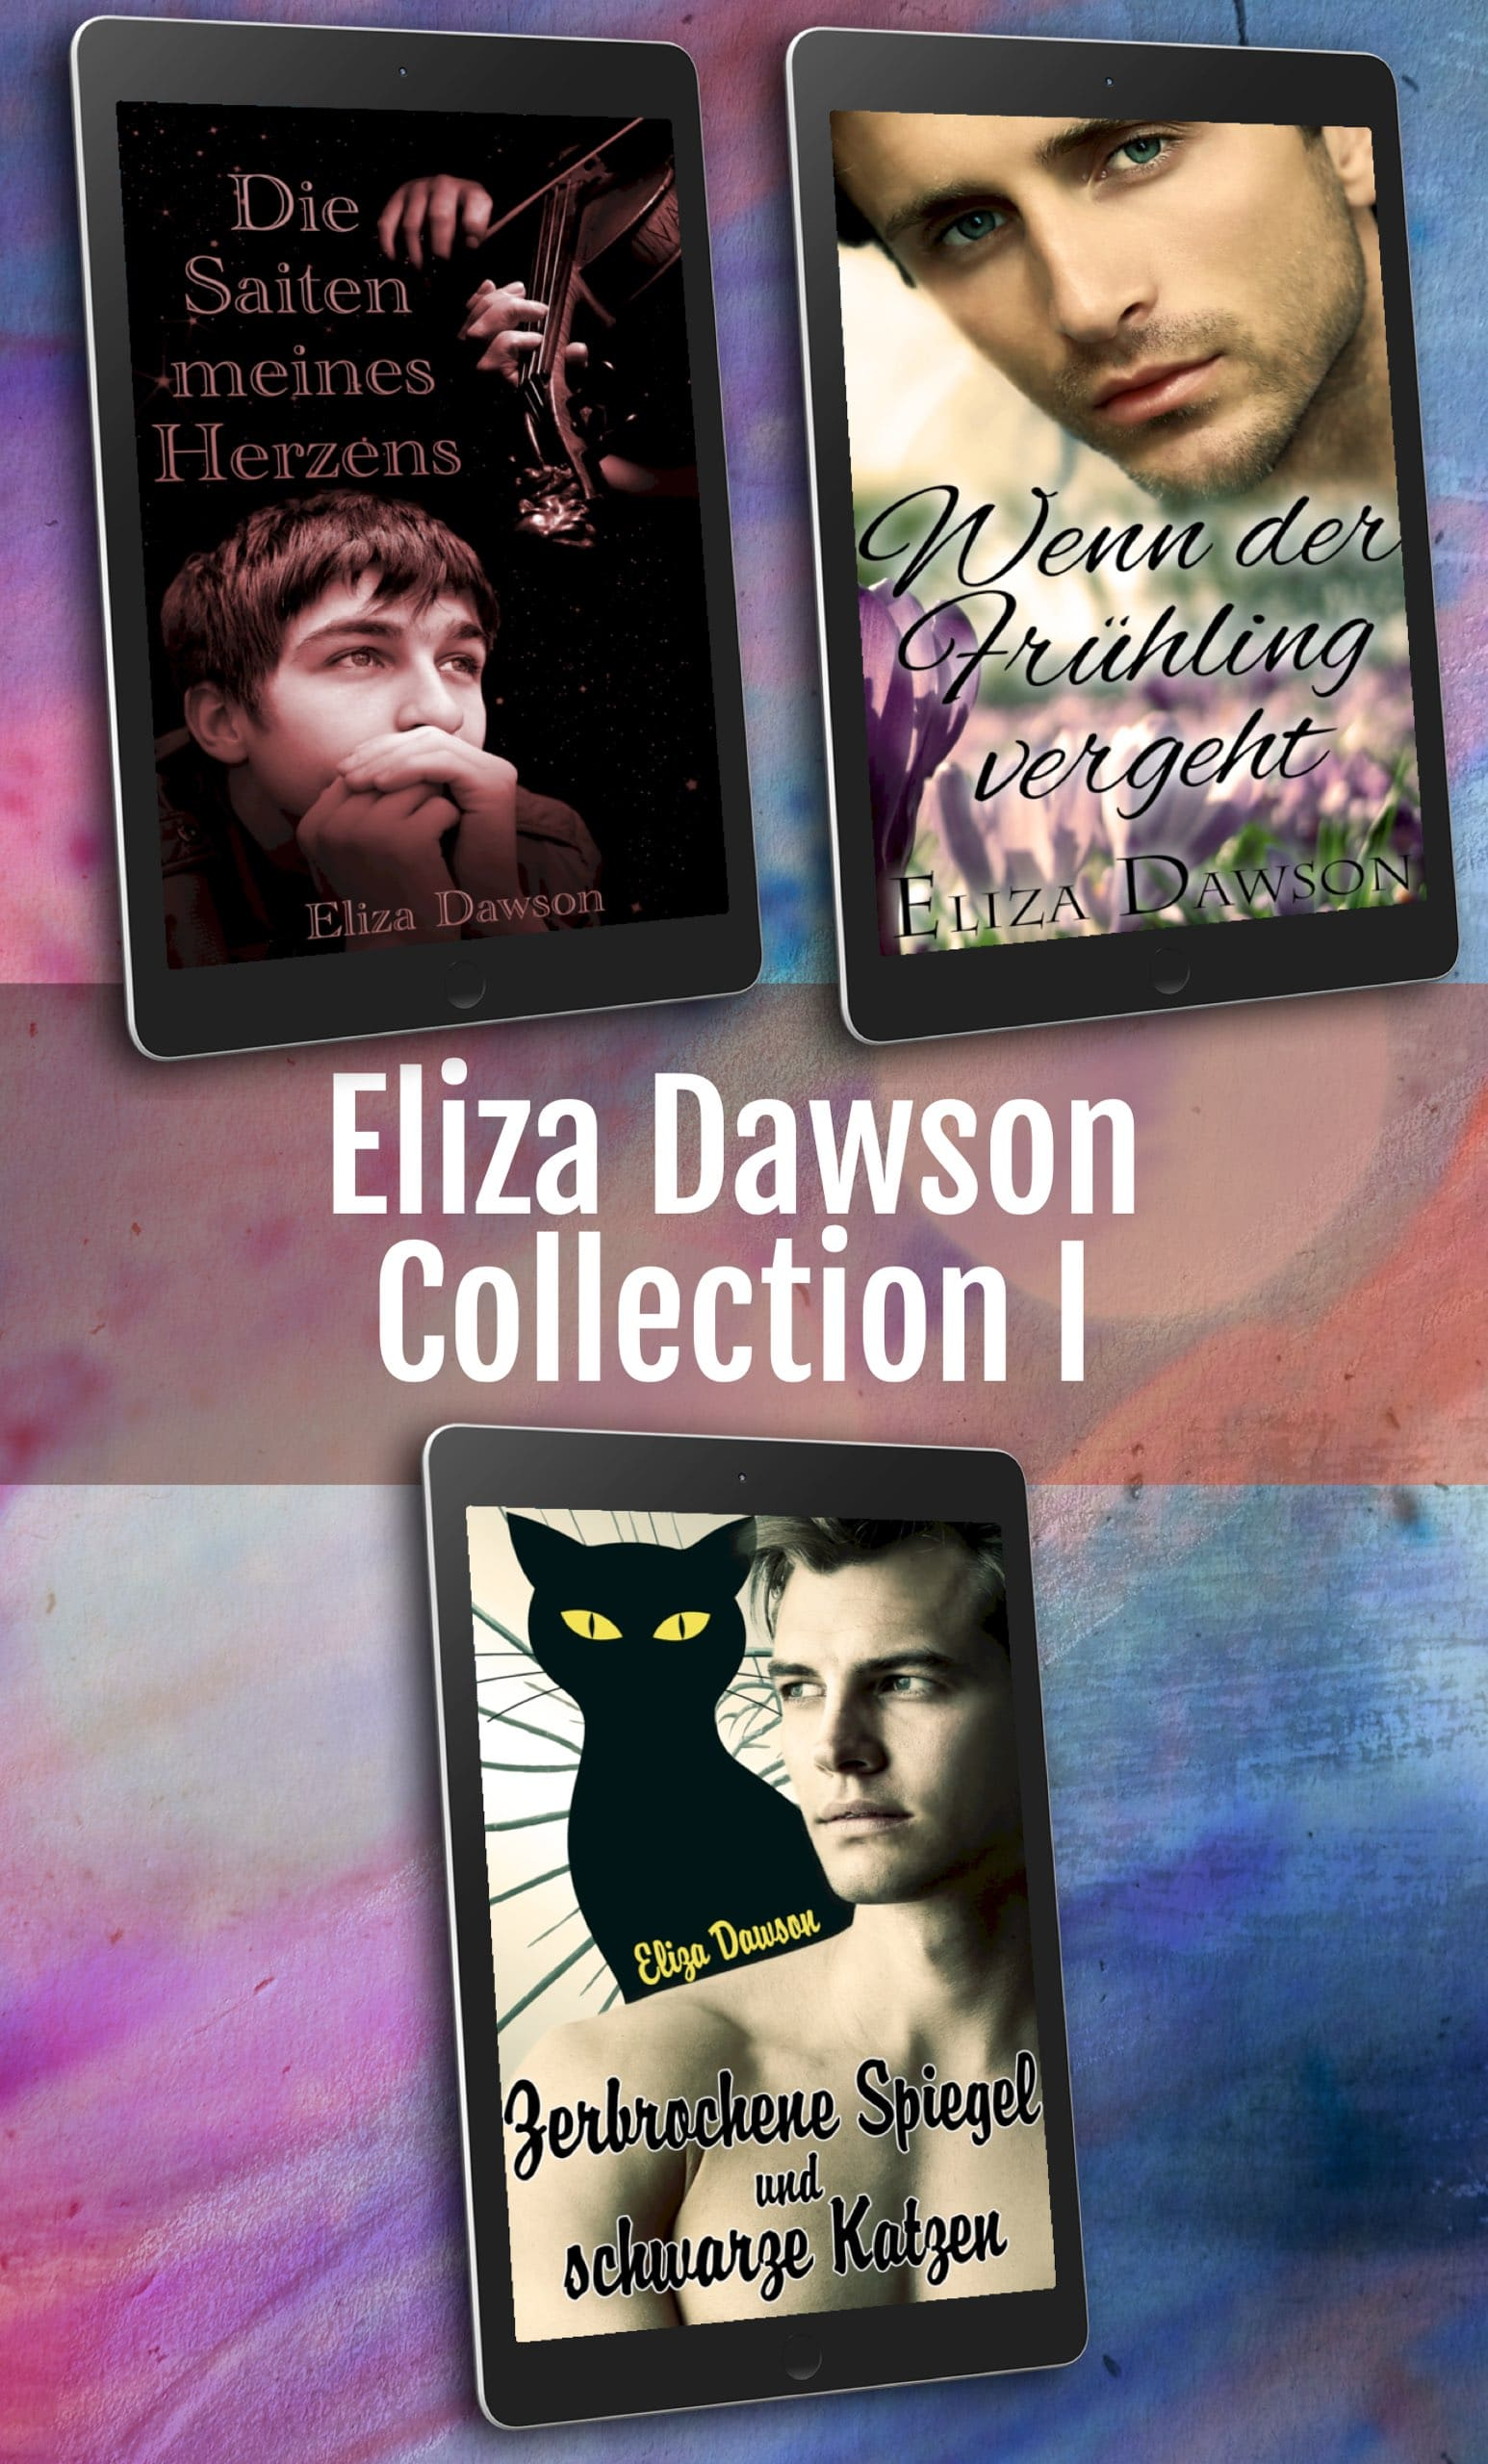 Eliza Dawson Collection I